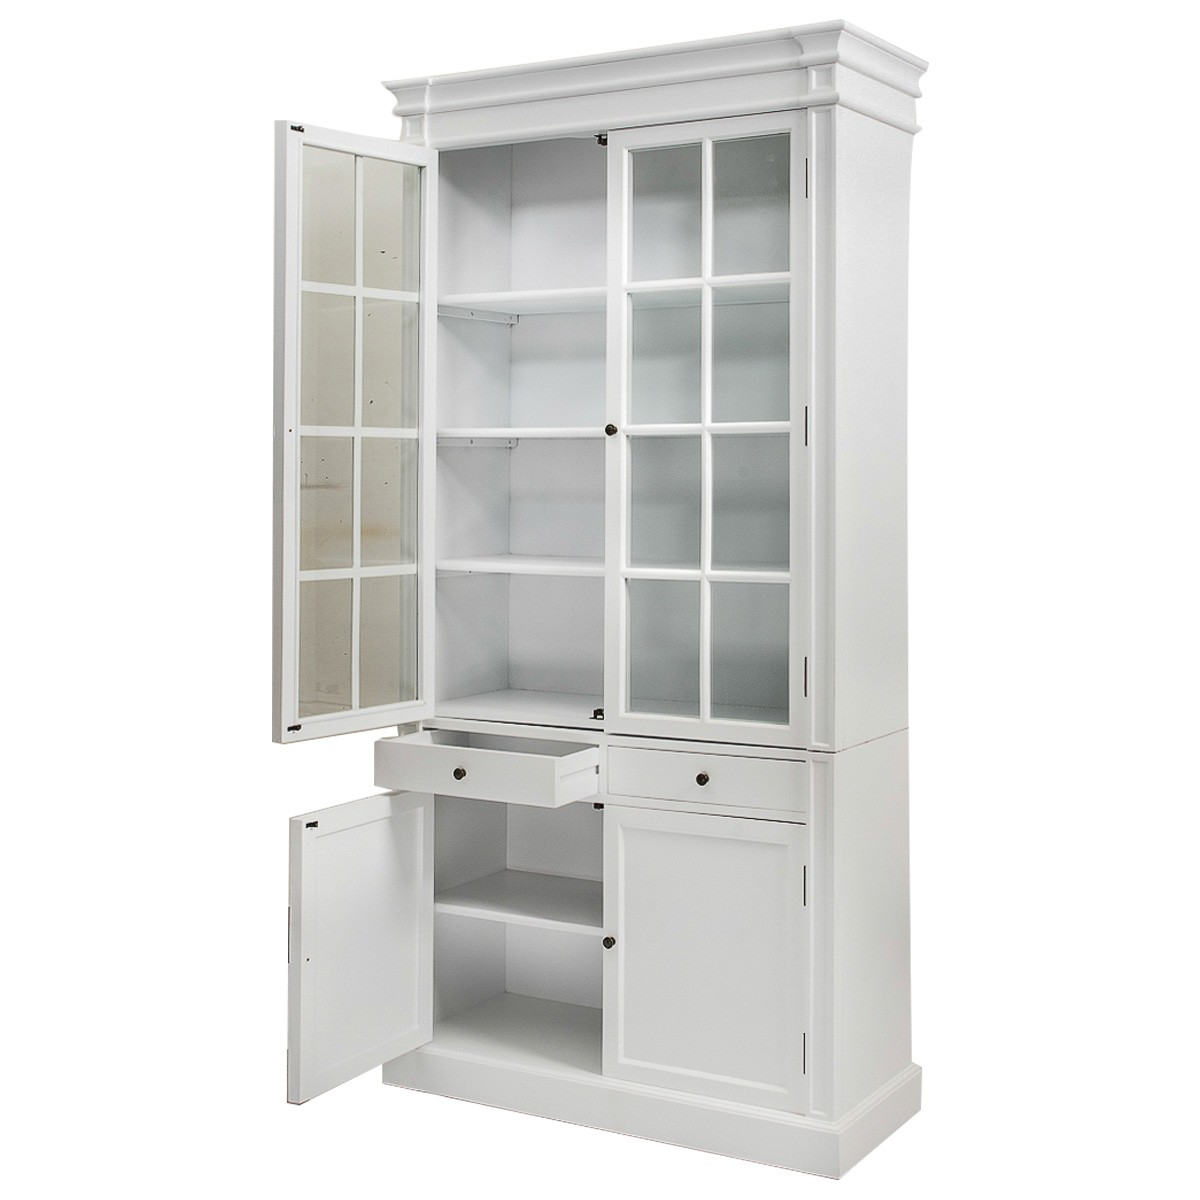 French Glass Kitchen Cabinet Doors: French Provincial Hamptons 2 Glass Door Display Cabinet